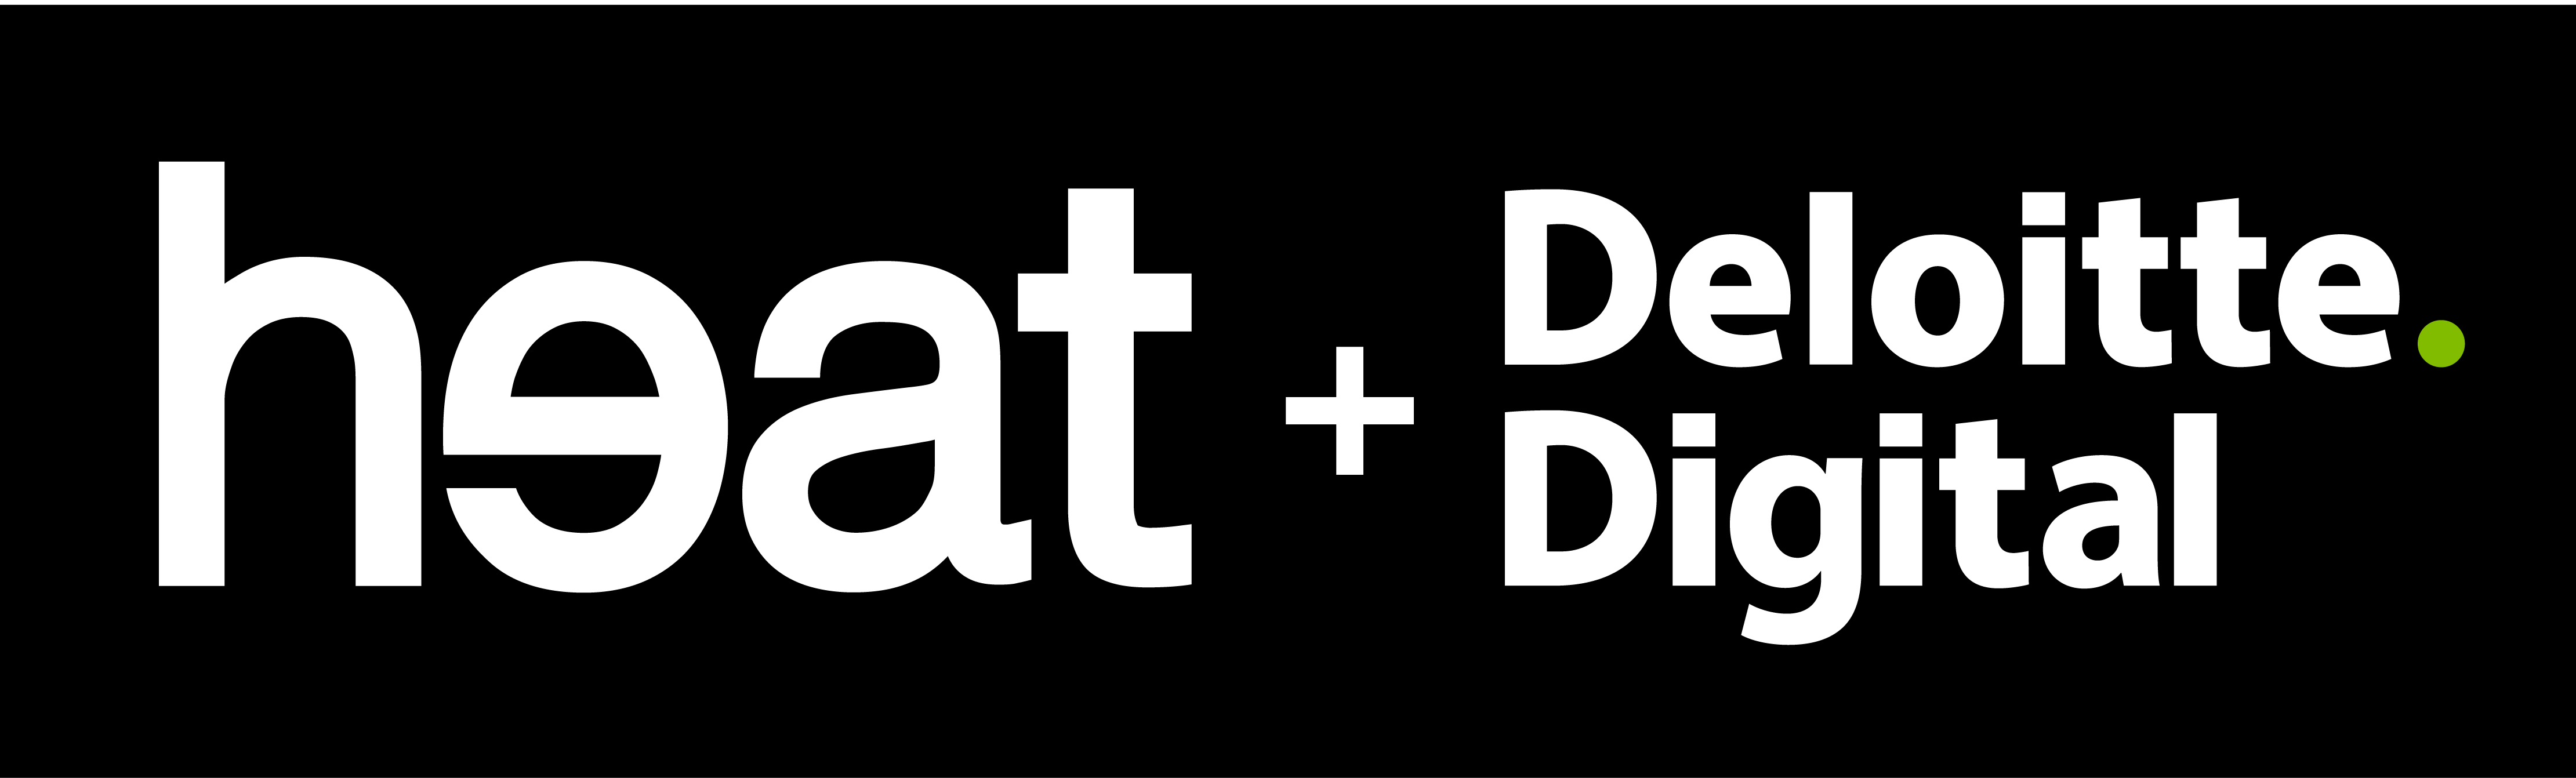 Heat + Deloitte Digital